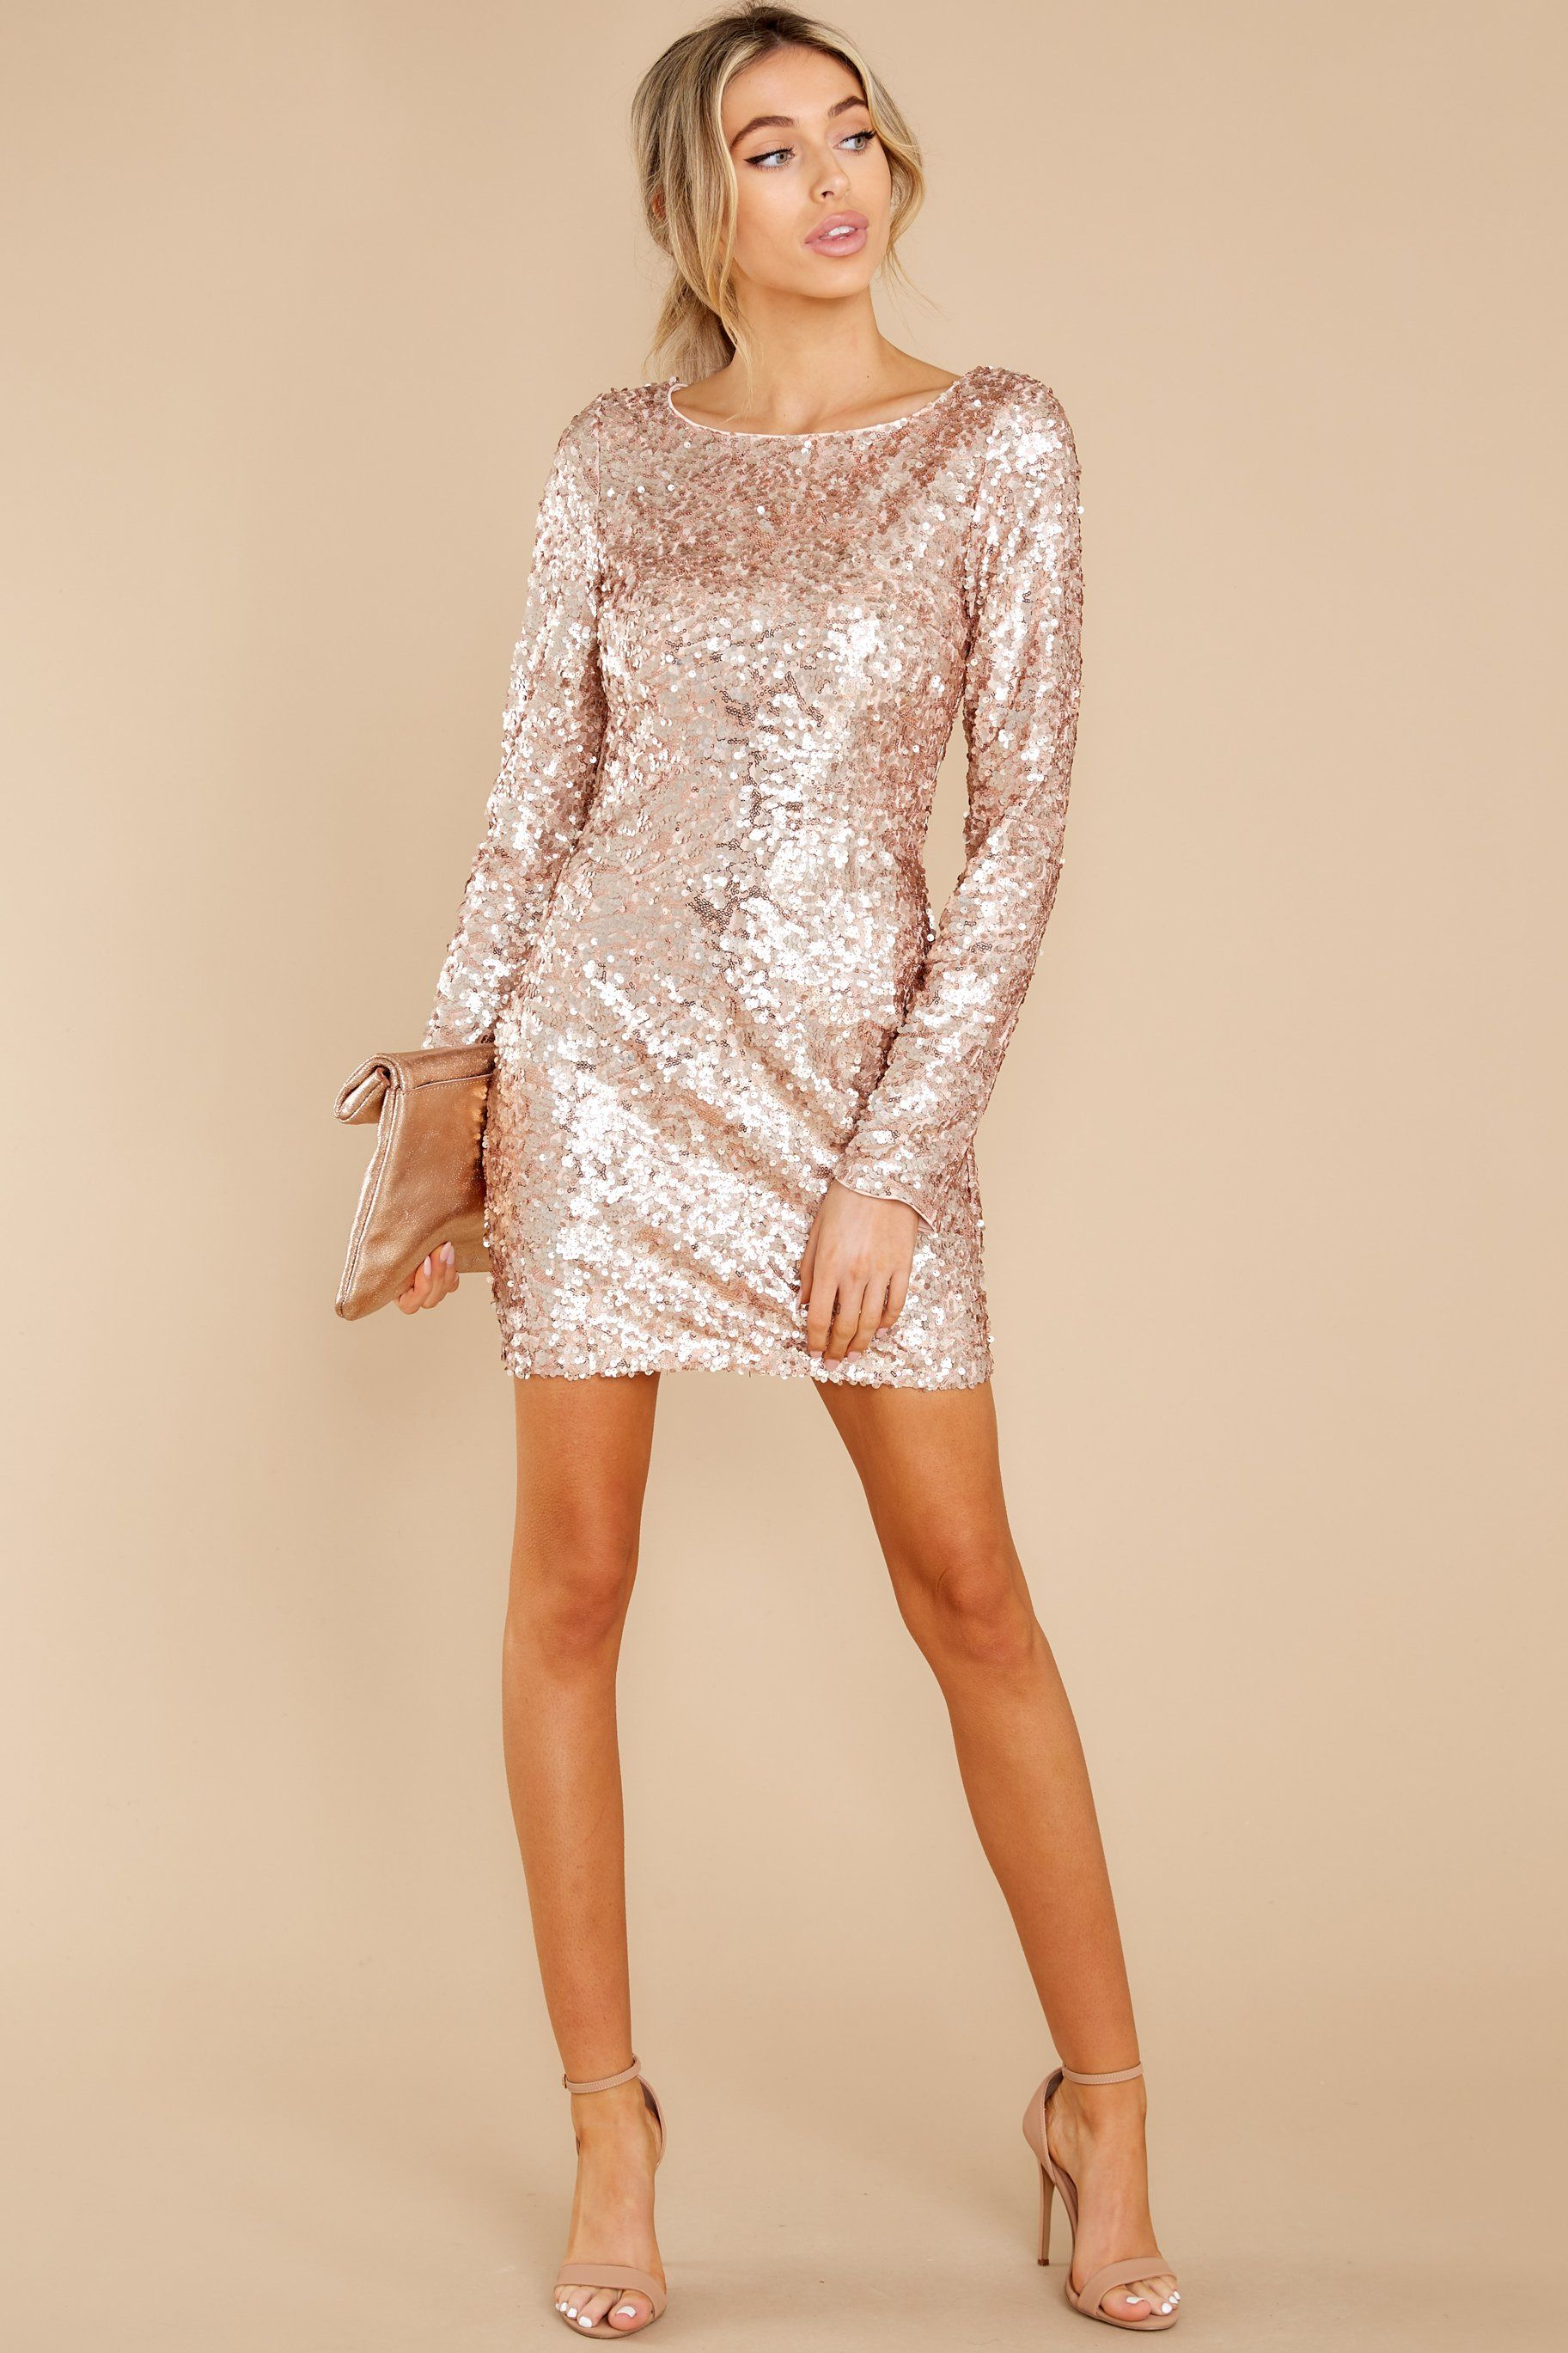 Stunning Pink Sequin Dress Party Dresses Red Dress In 2021 Dresses Sequin Dress Gold Sequin Dress [ 2738 x 1825 Pixel ]